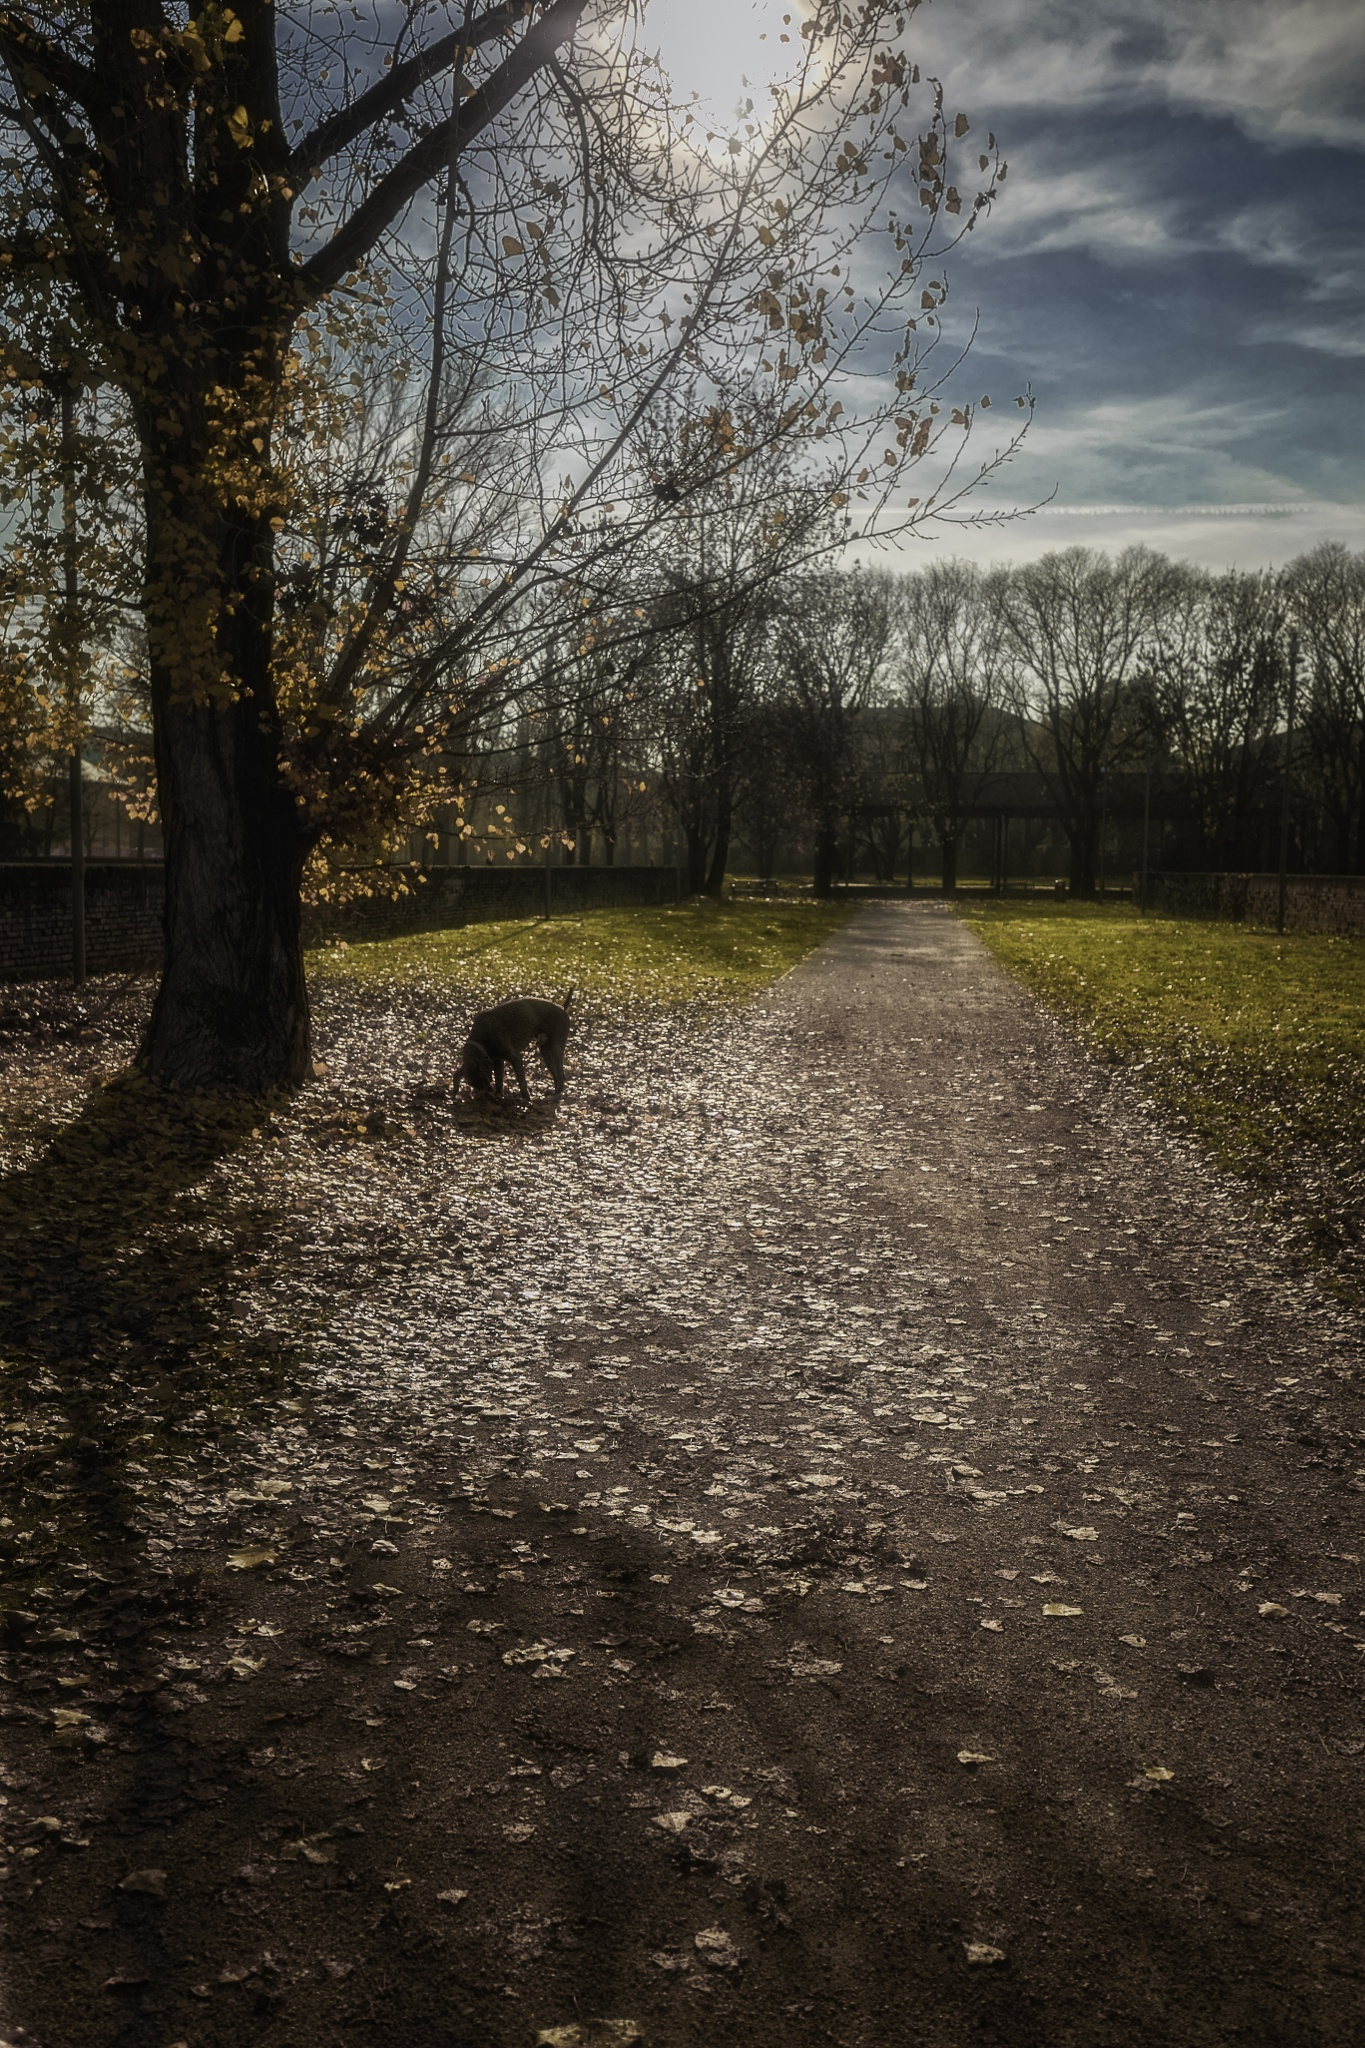 Dog in the park by frank.leale.7